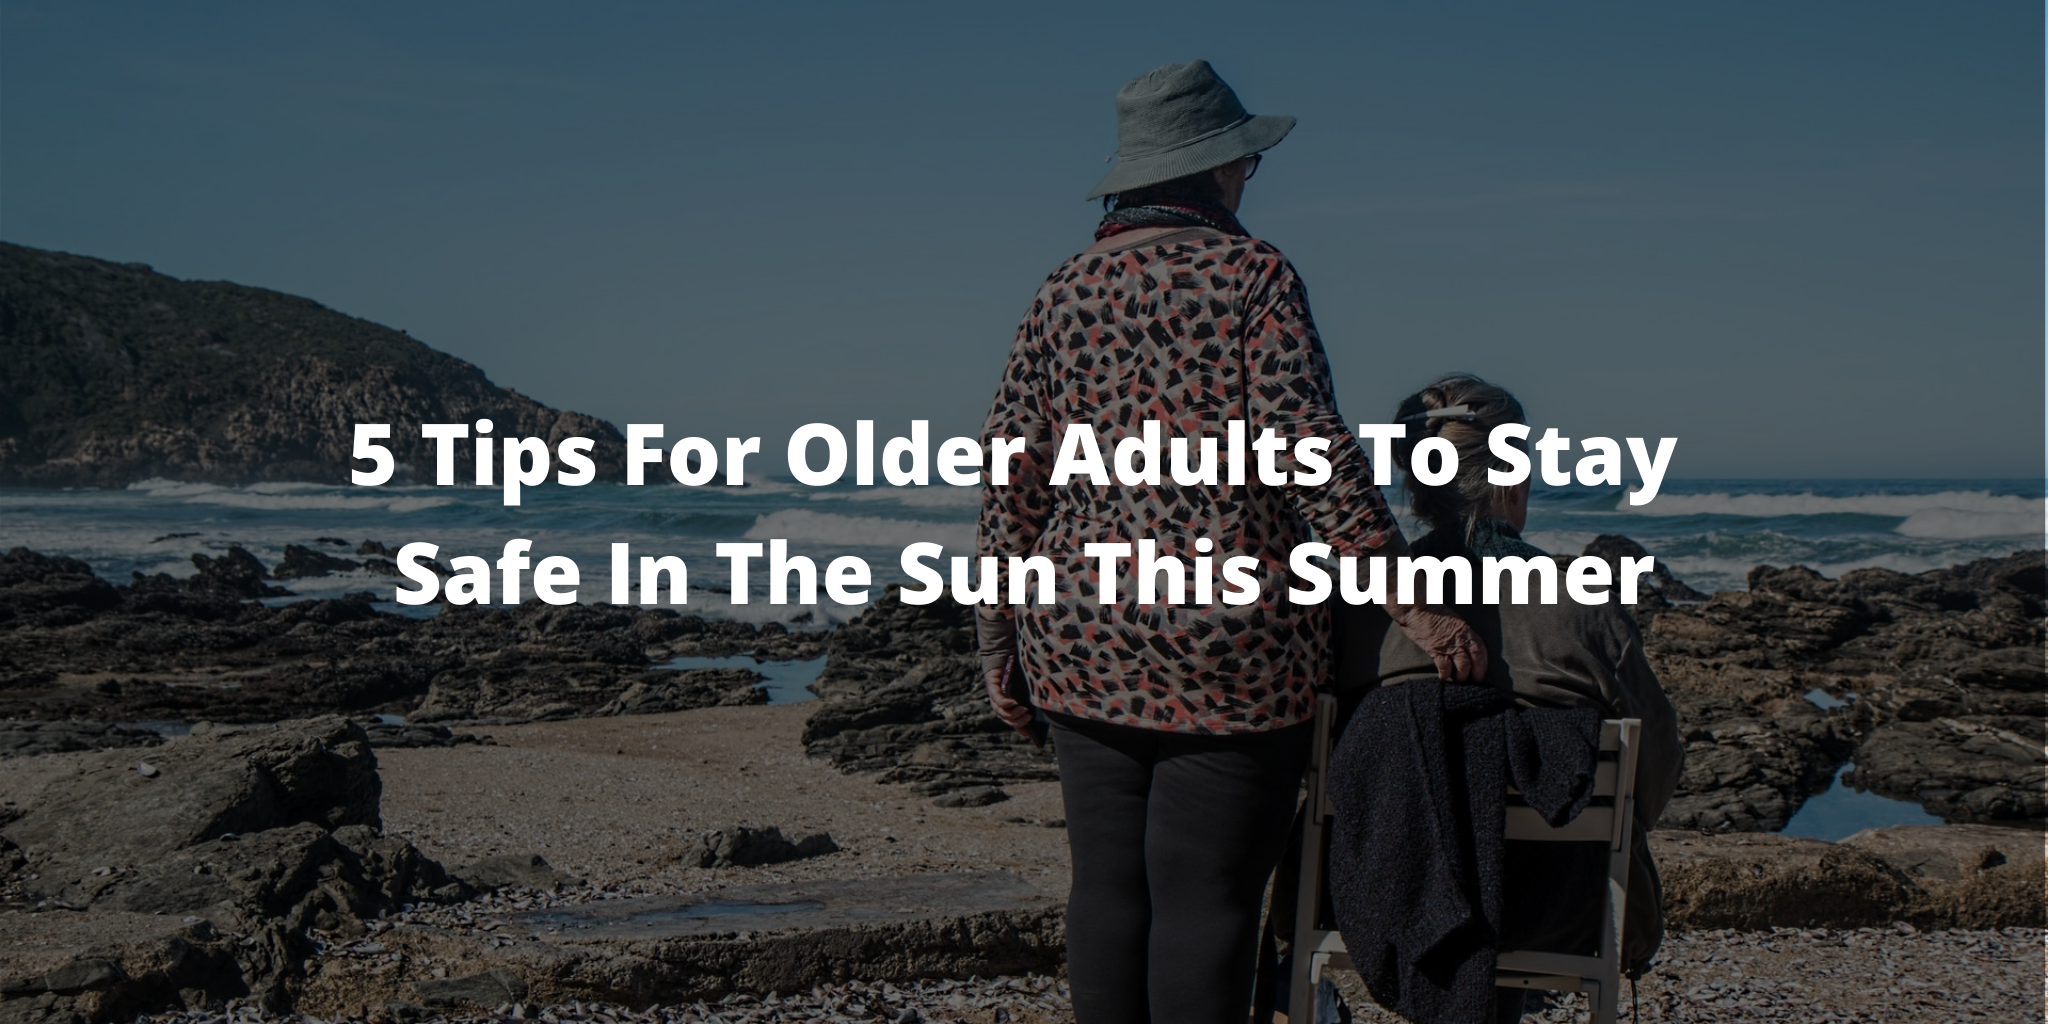 5 Tips For Older Adults To Stay Safe In The Sun This Summer